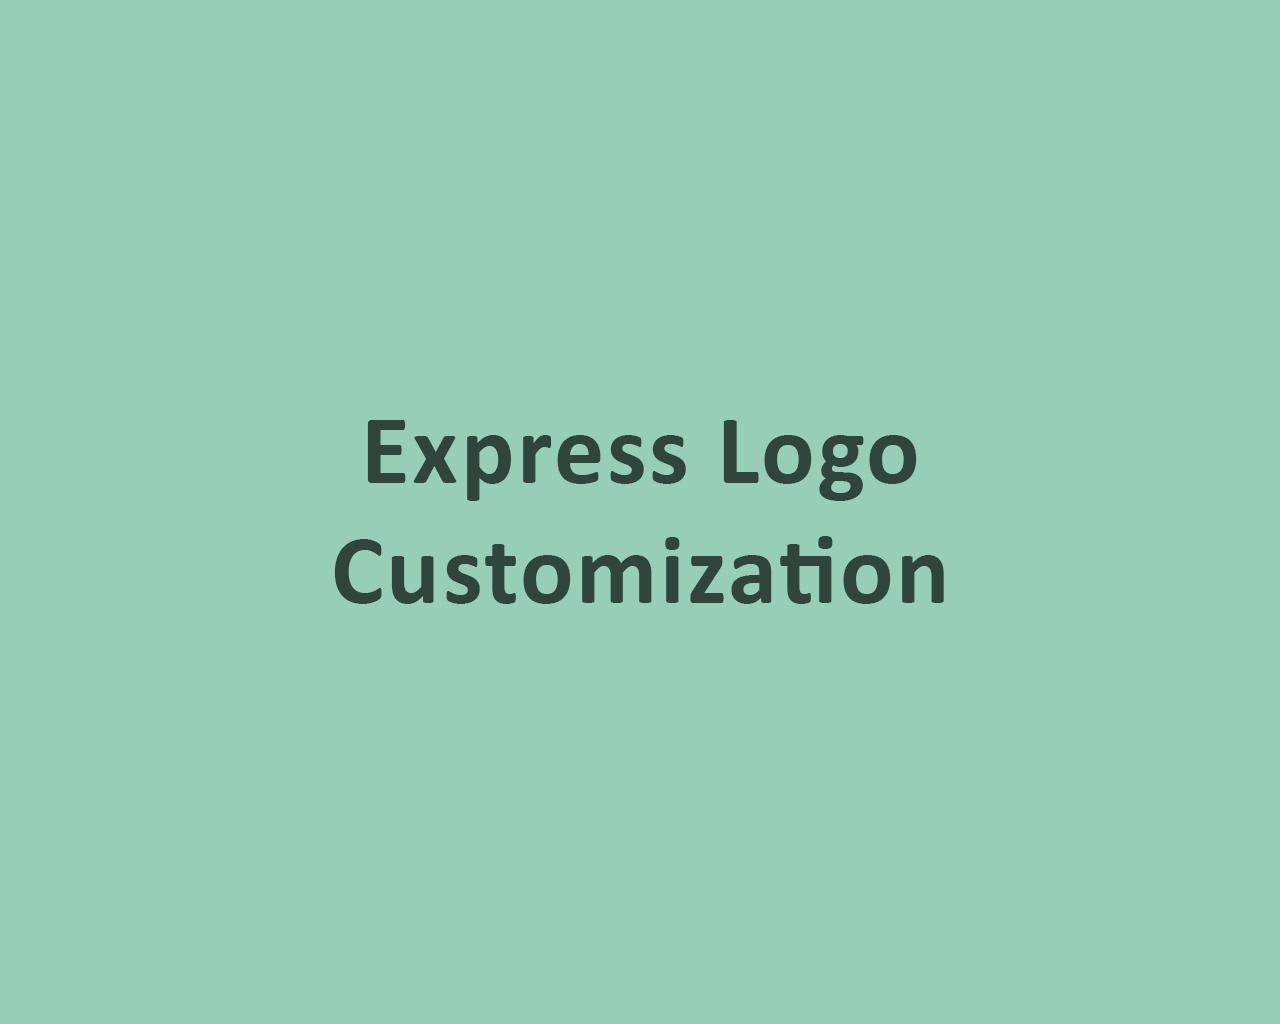 Express Logo Customization by odiusfly - 105969